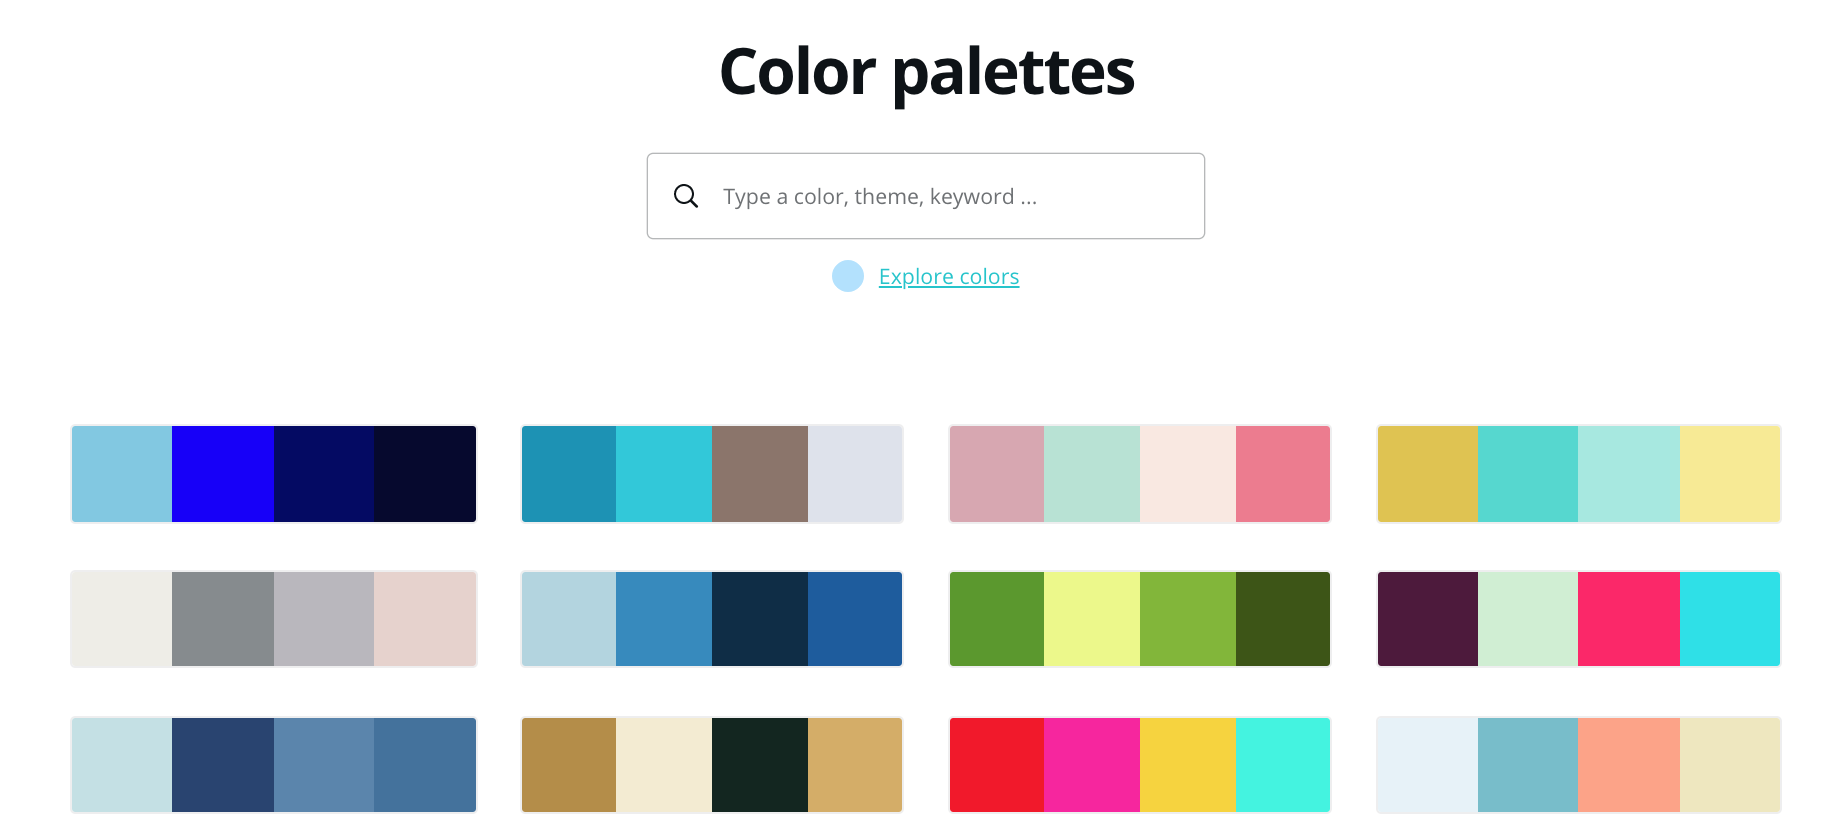 canva color palettes with different options for combinations